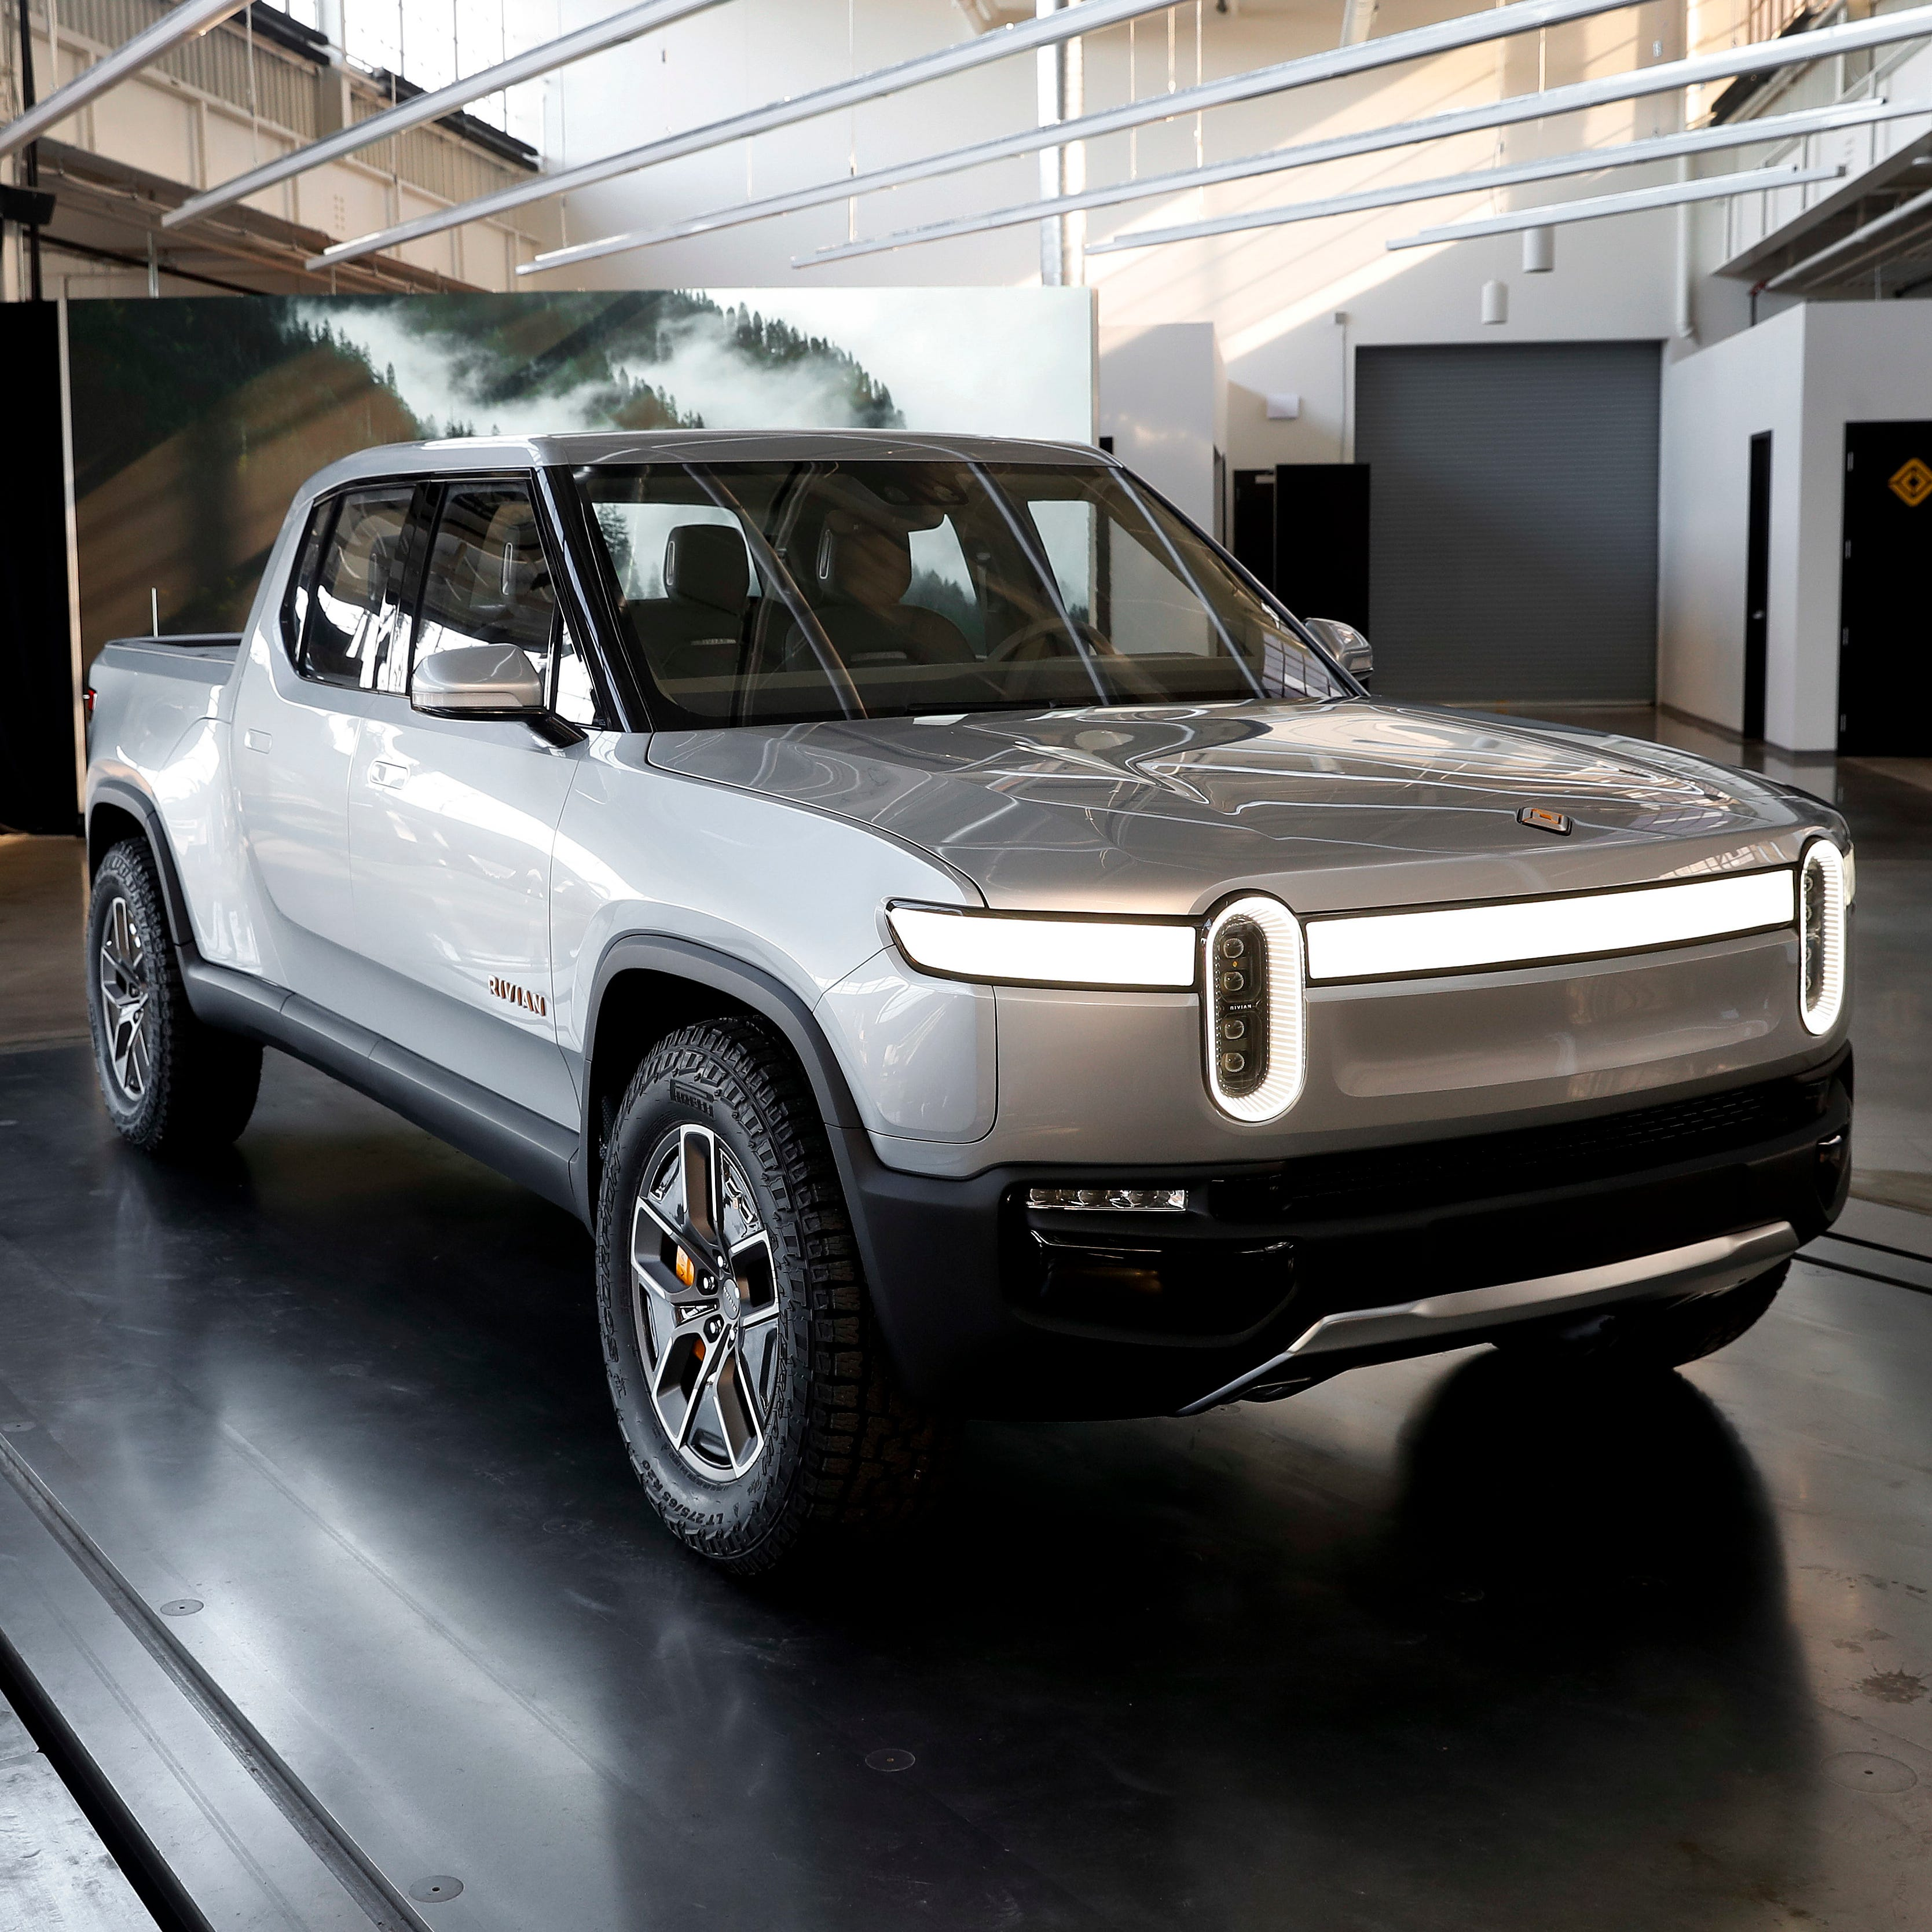 Rivian's electric truck aims to be Michigan's Tesla-fighter